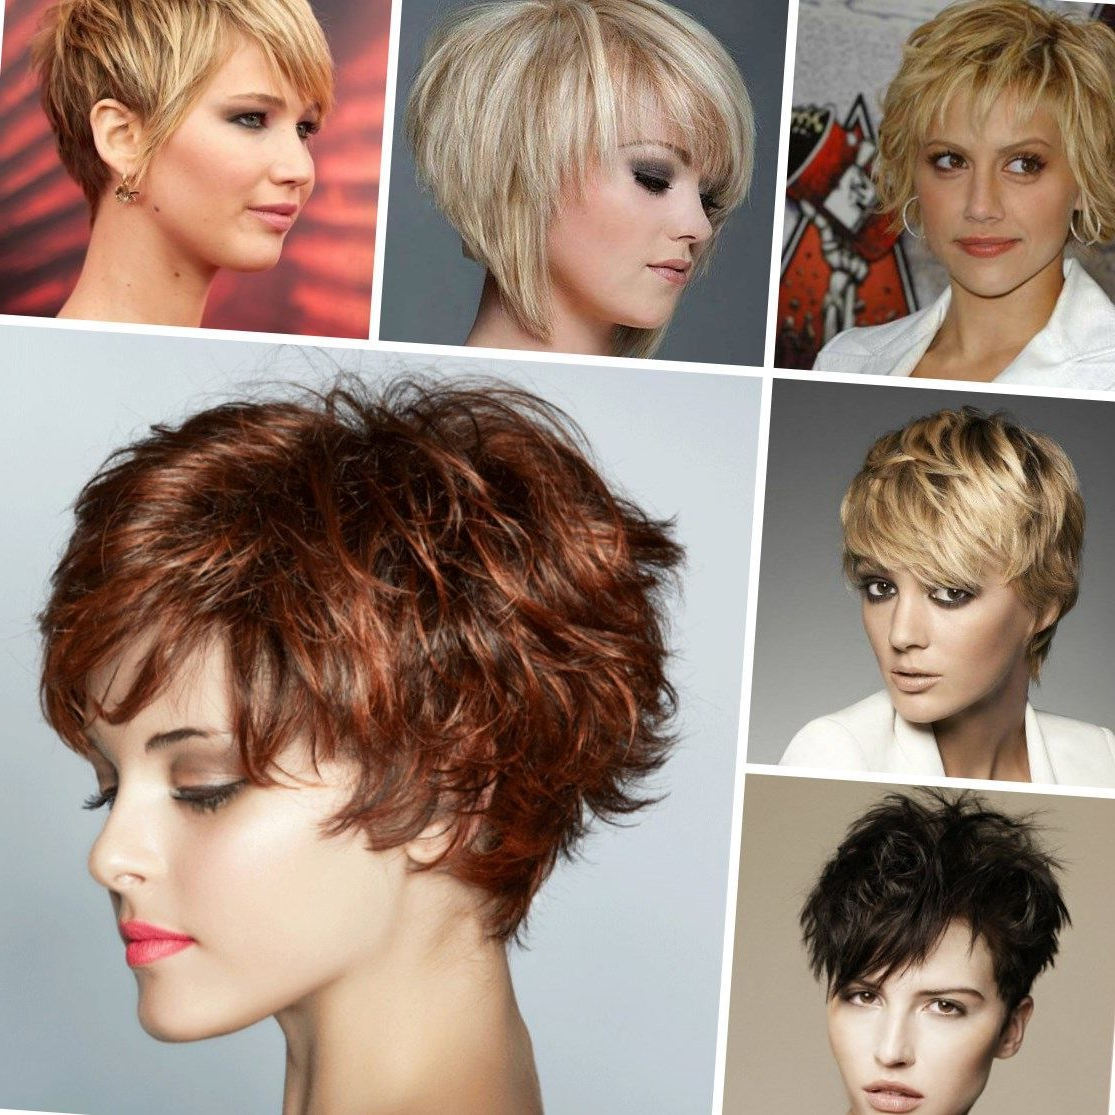 20 Short Sassy Haircuts Short Hairstyles 2017 2018 Most Short Inside Pure Blonde Shorter Hairstyles For Older Women (View 9 of 20)